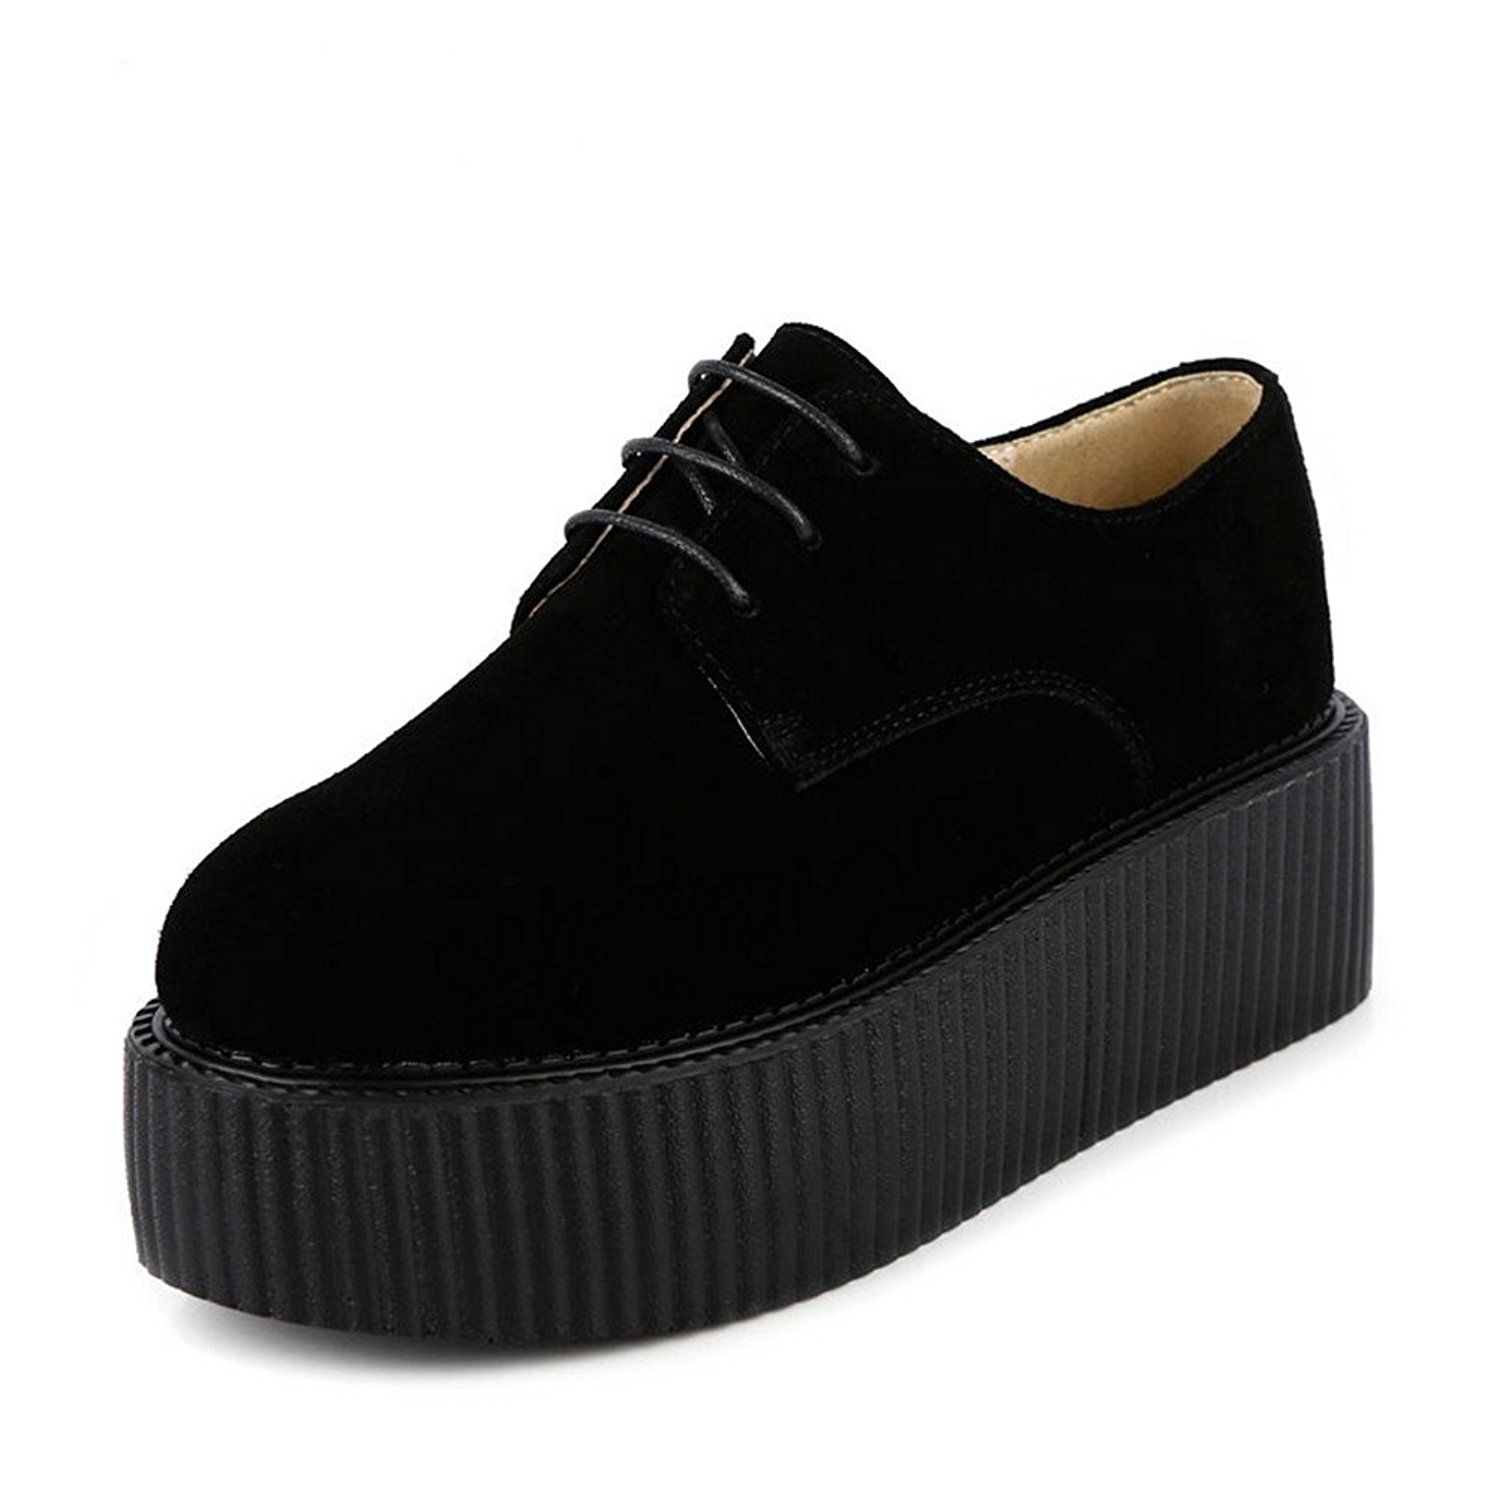 a539cf4d827 Get Quotations · RoseG Women Creepers Suede Lace Up Flats Punk Goth Platform  Oxfords